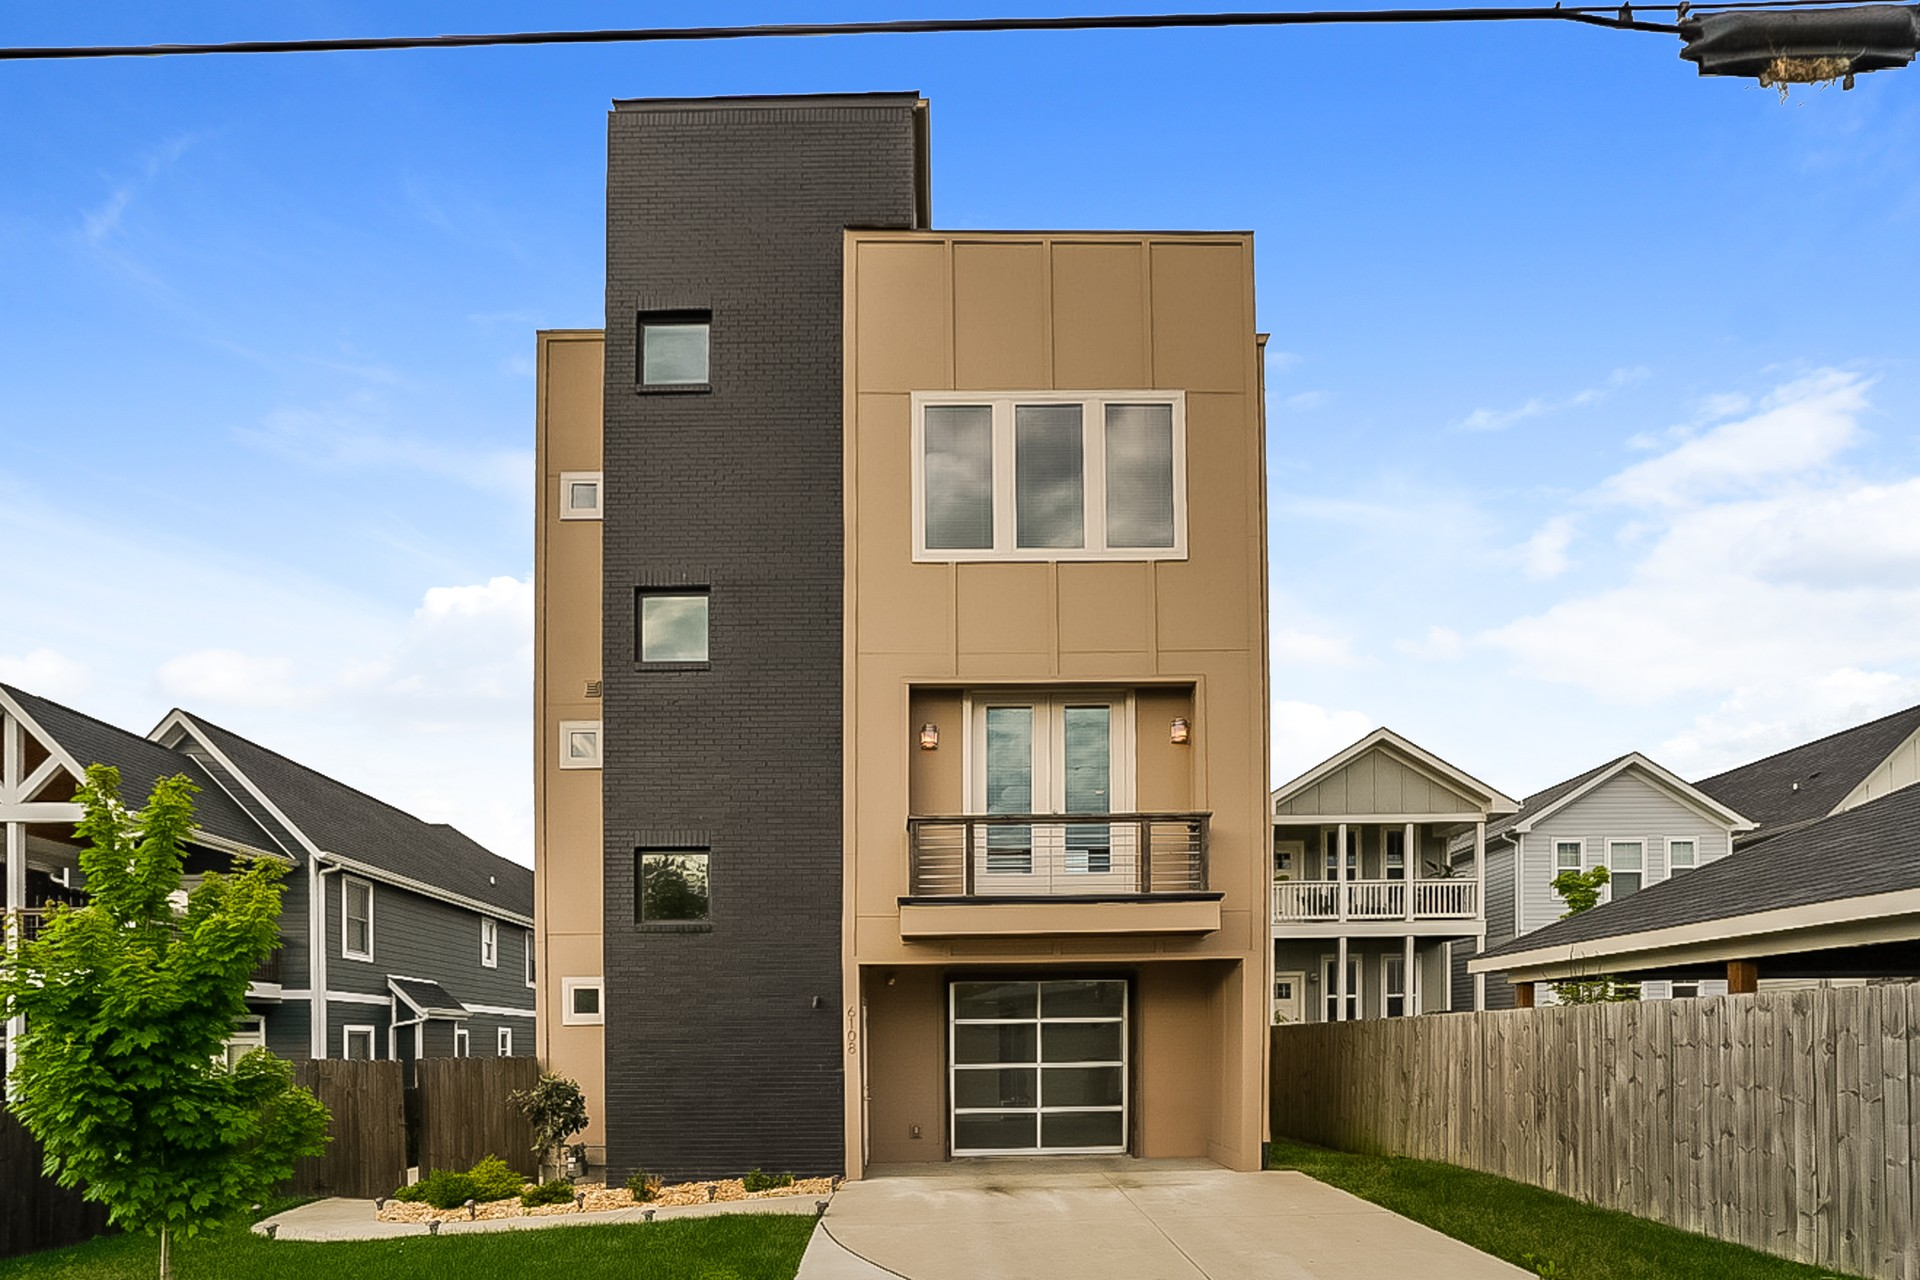 6108 New York Ave Townhome Real Estate Listings Main Image